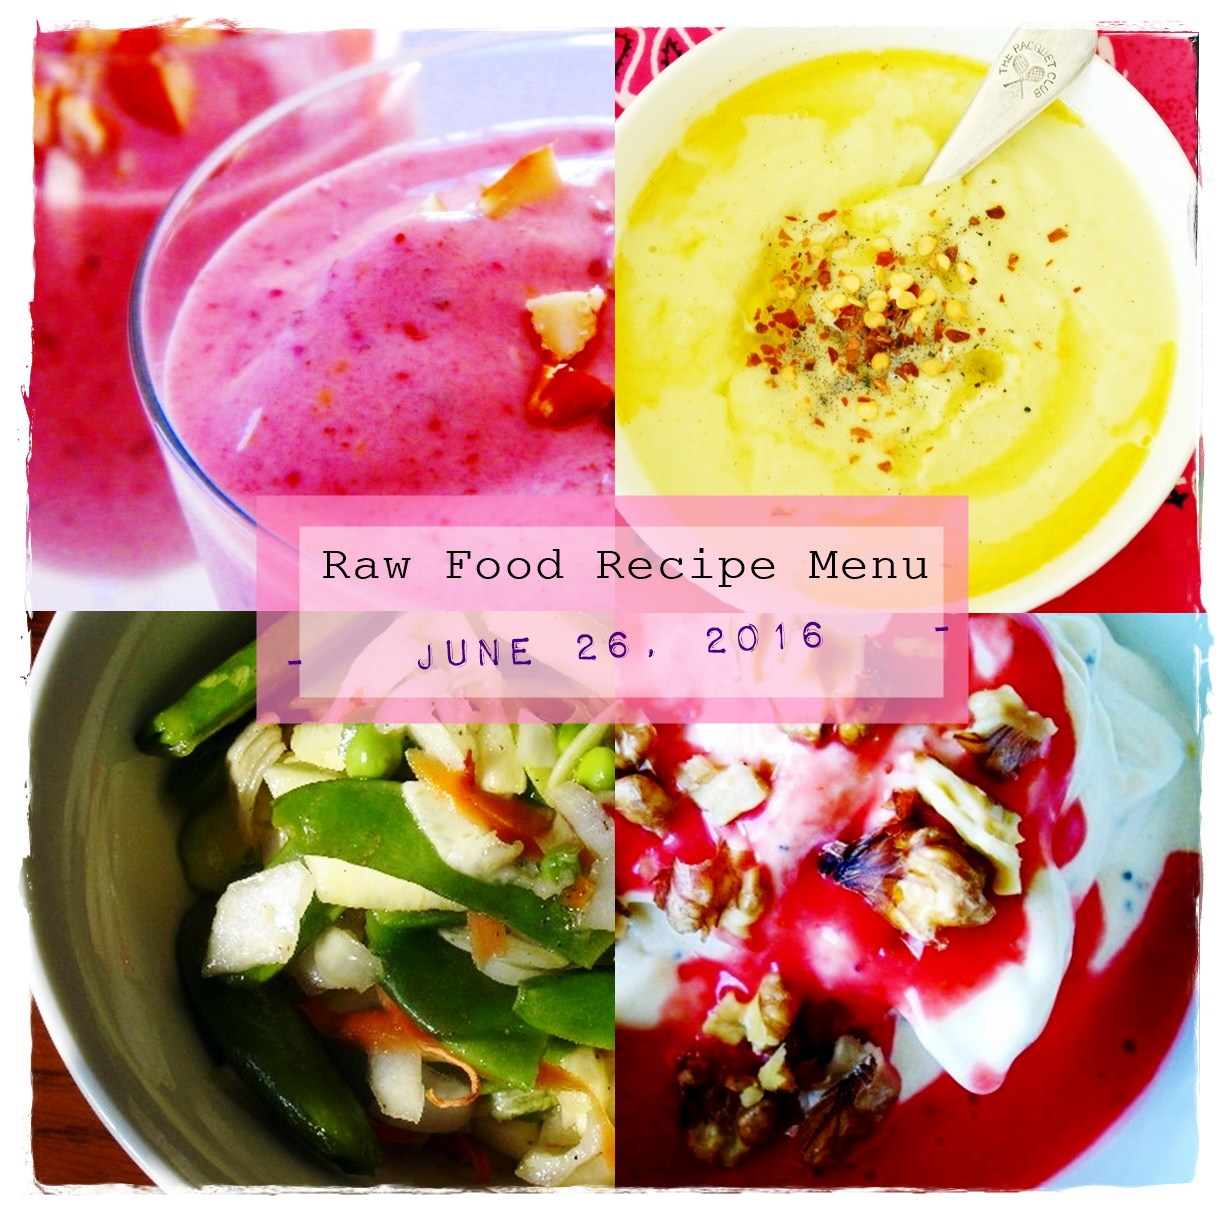 Raw on 10 a day or less raw food recipe menu june 26th 2016 forumfinder